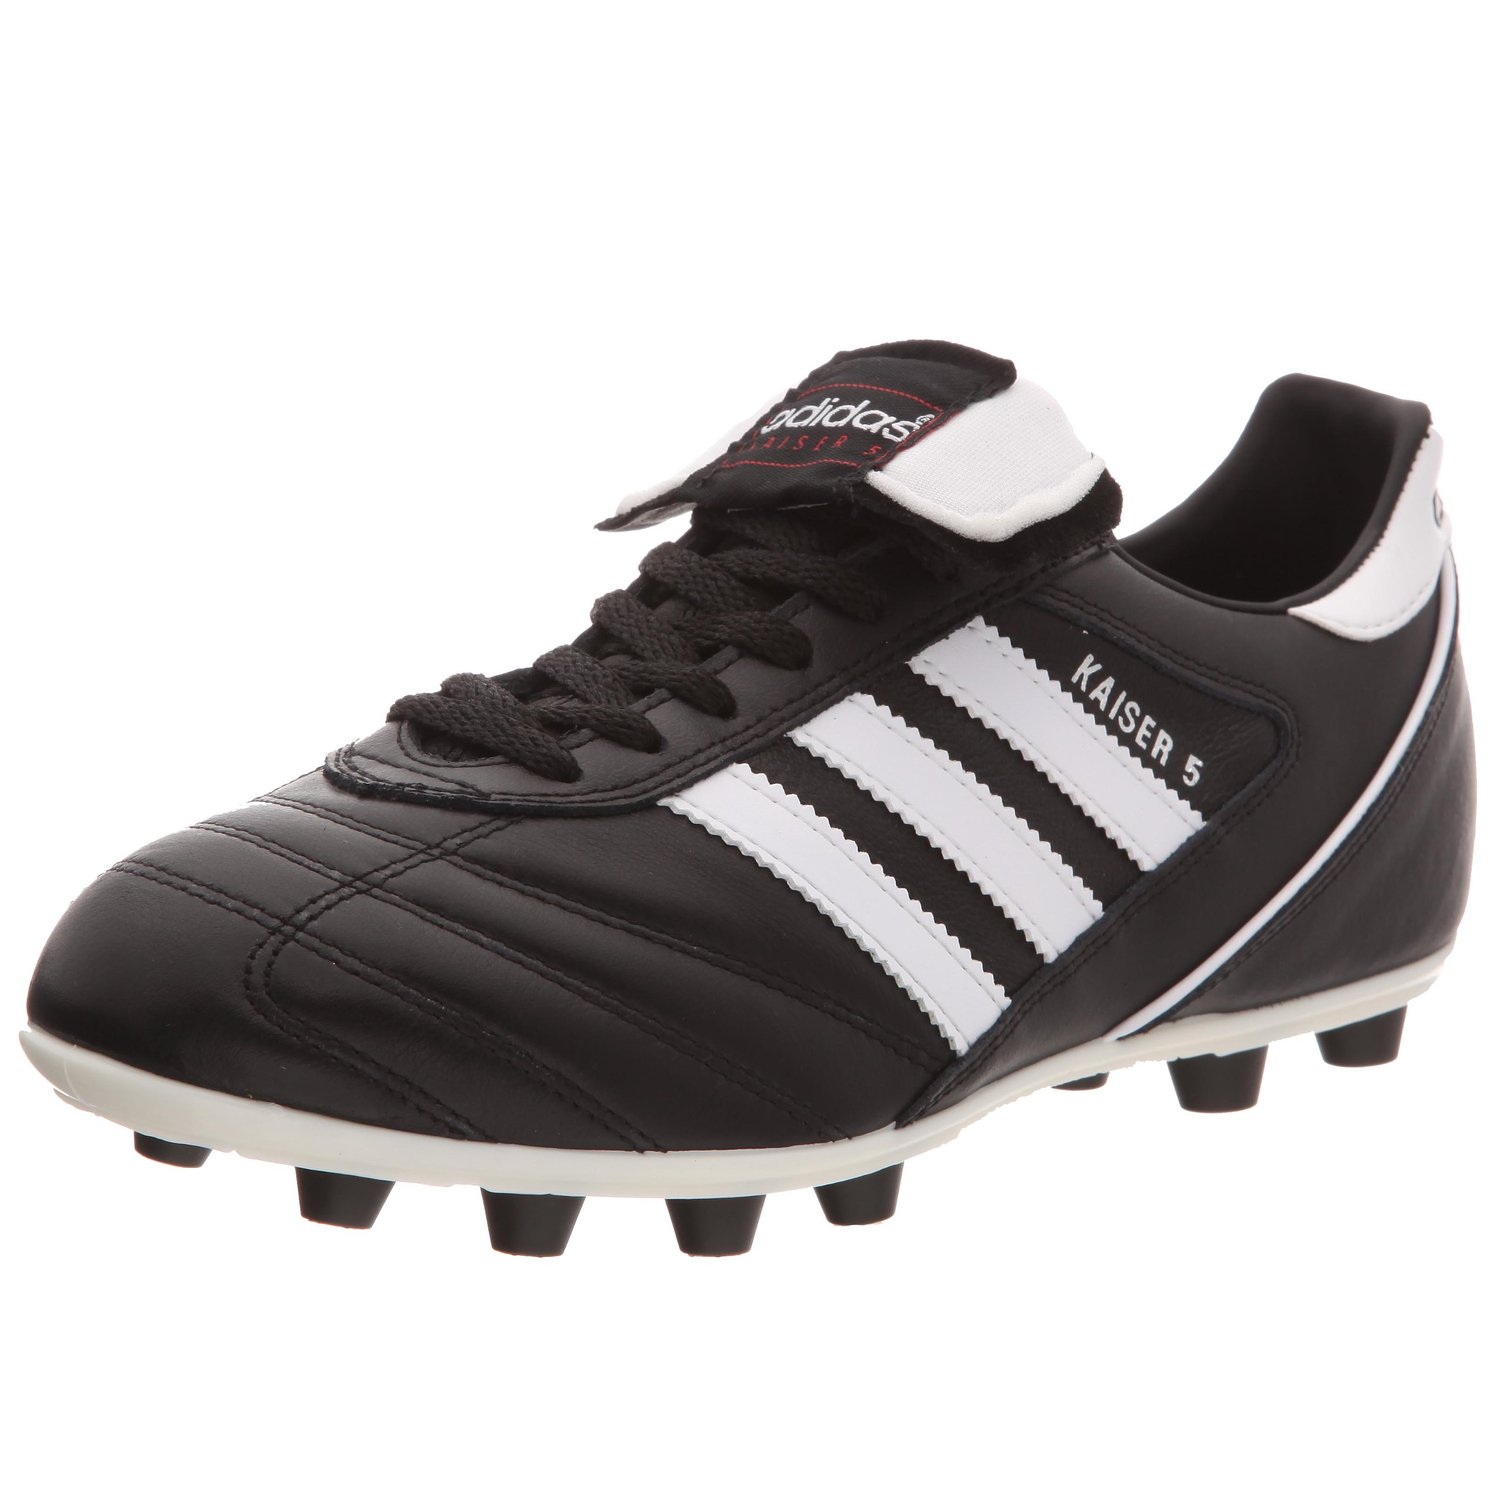 eb1bf21f4 Lissay Shoes Mens Football Soccer Mercurial Superfly V AG Pro Black Boots.  Get Quotations · Adidas Kaiser 5 Liga Firm Ground Football Boots - 12 -  Black